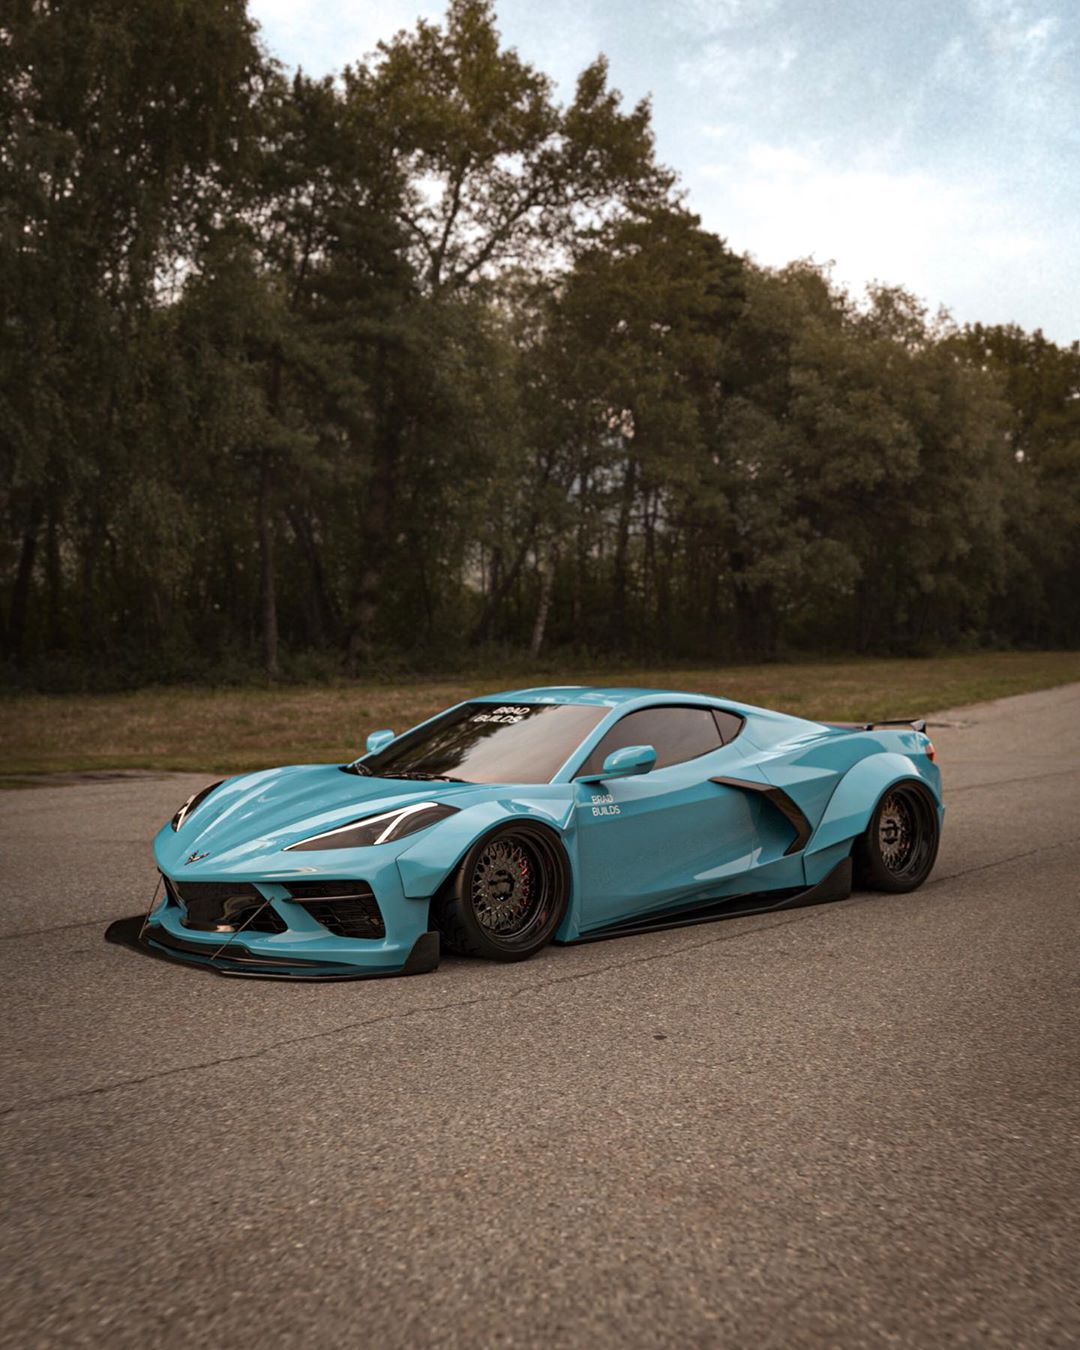 2020 Chevrolet Corvette C8 Rendered With Widebody Kit ...